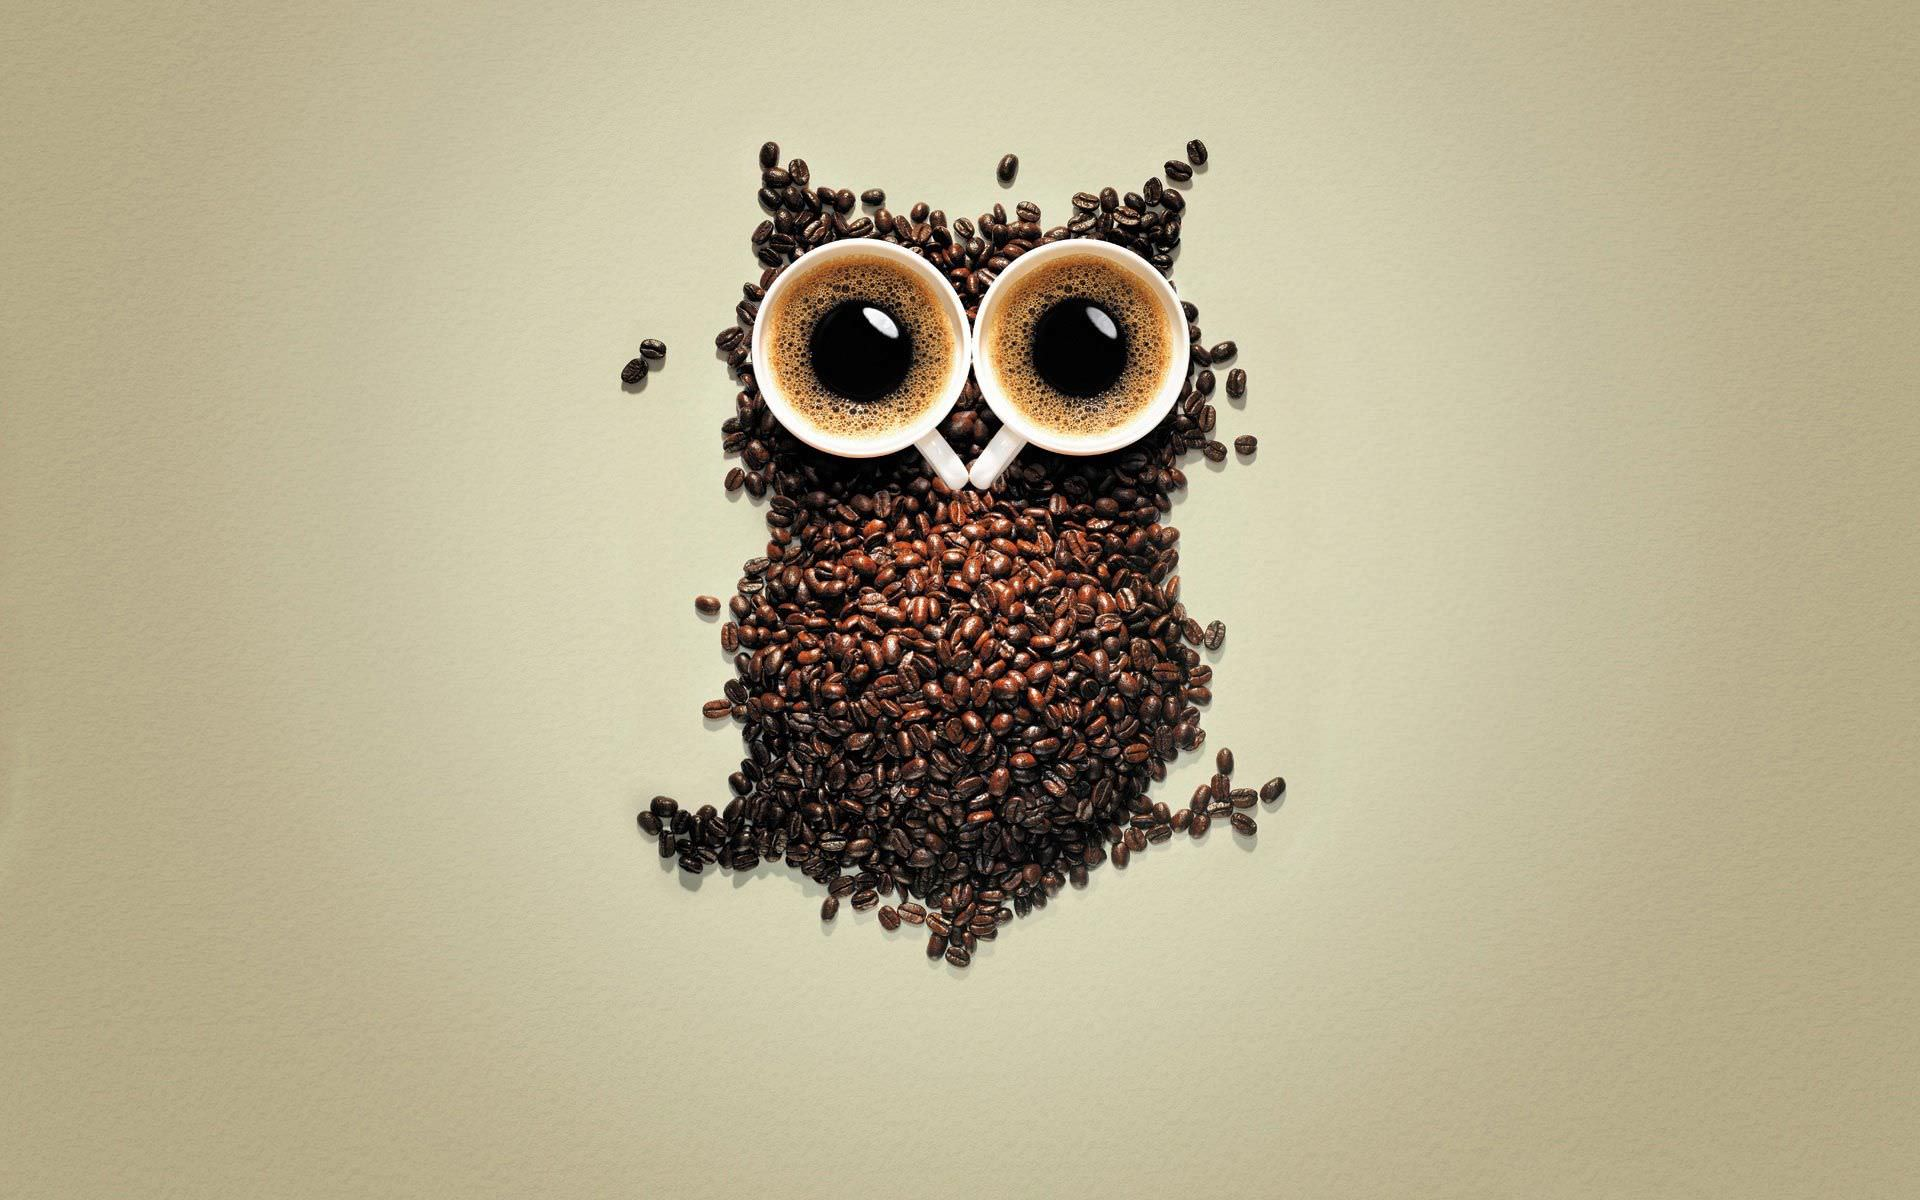 Funny Owl Coffee Beans Wallpaper